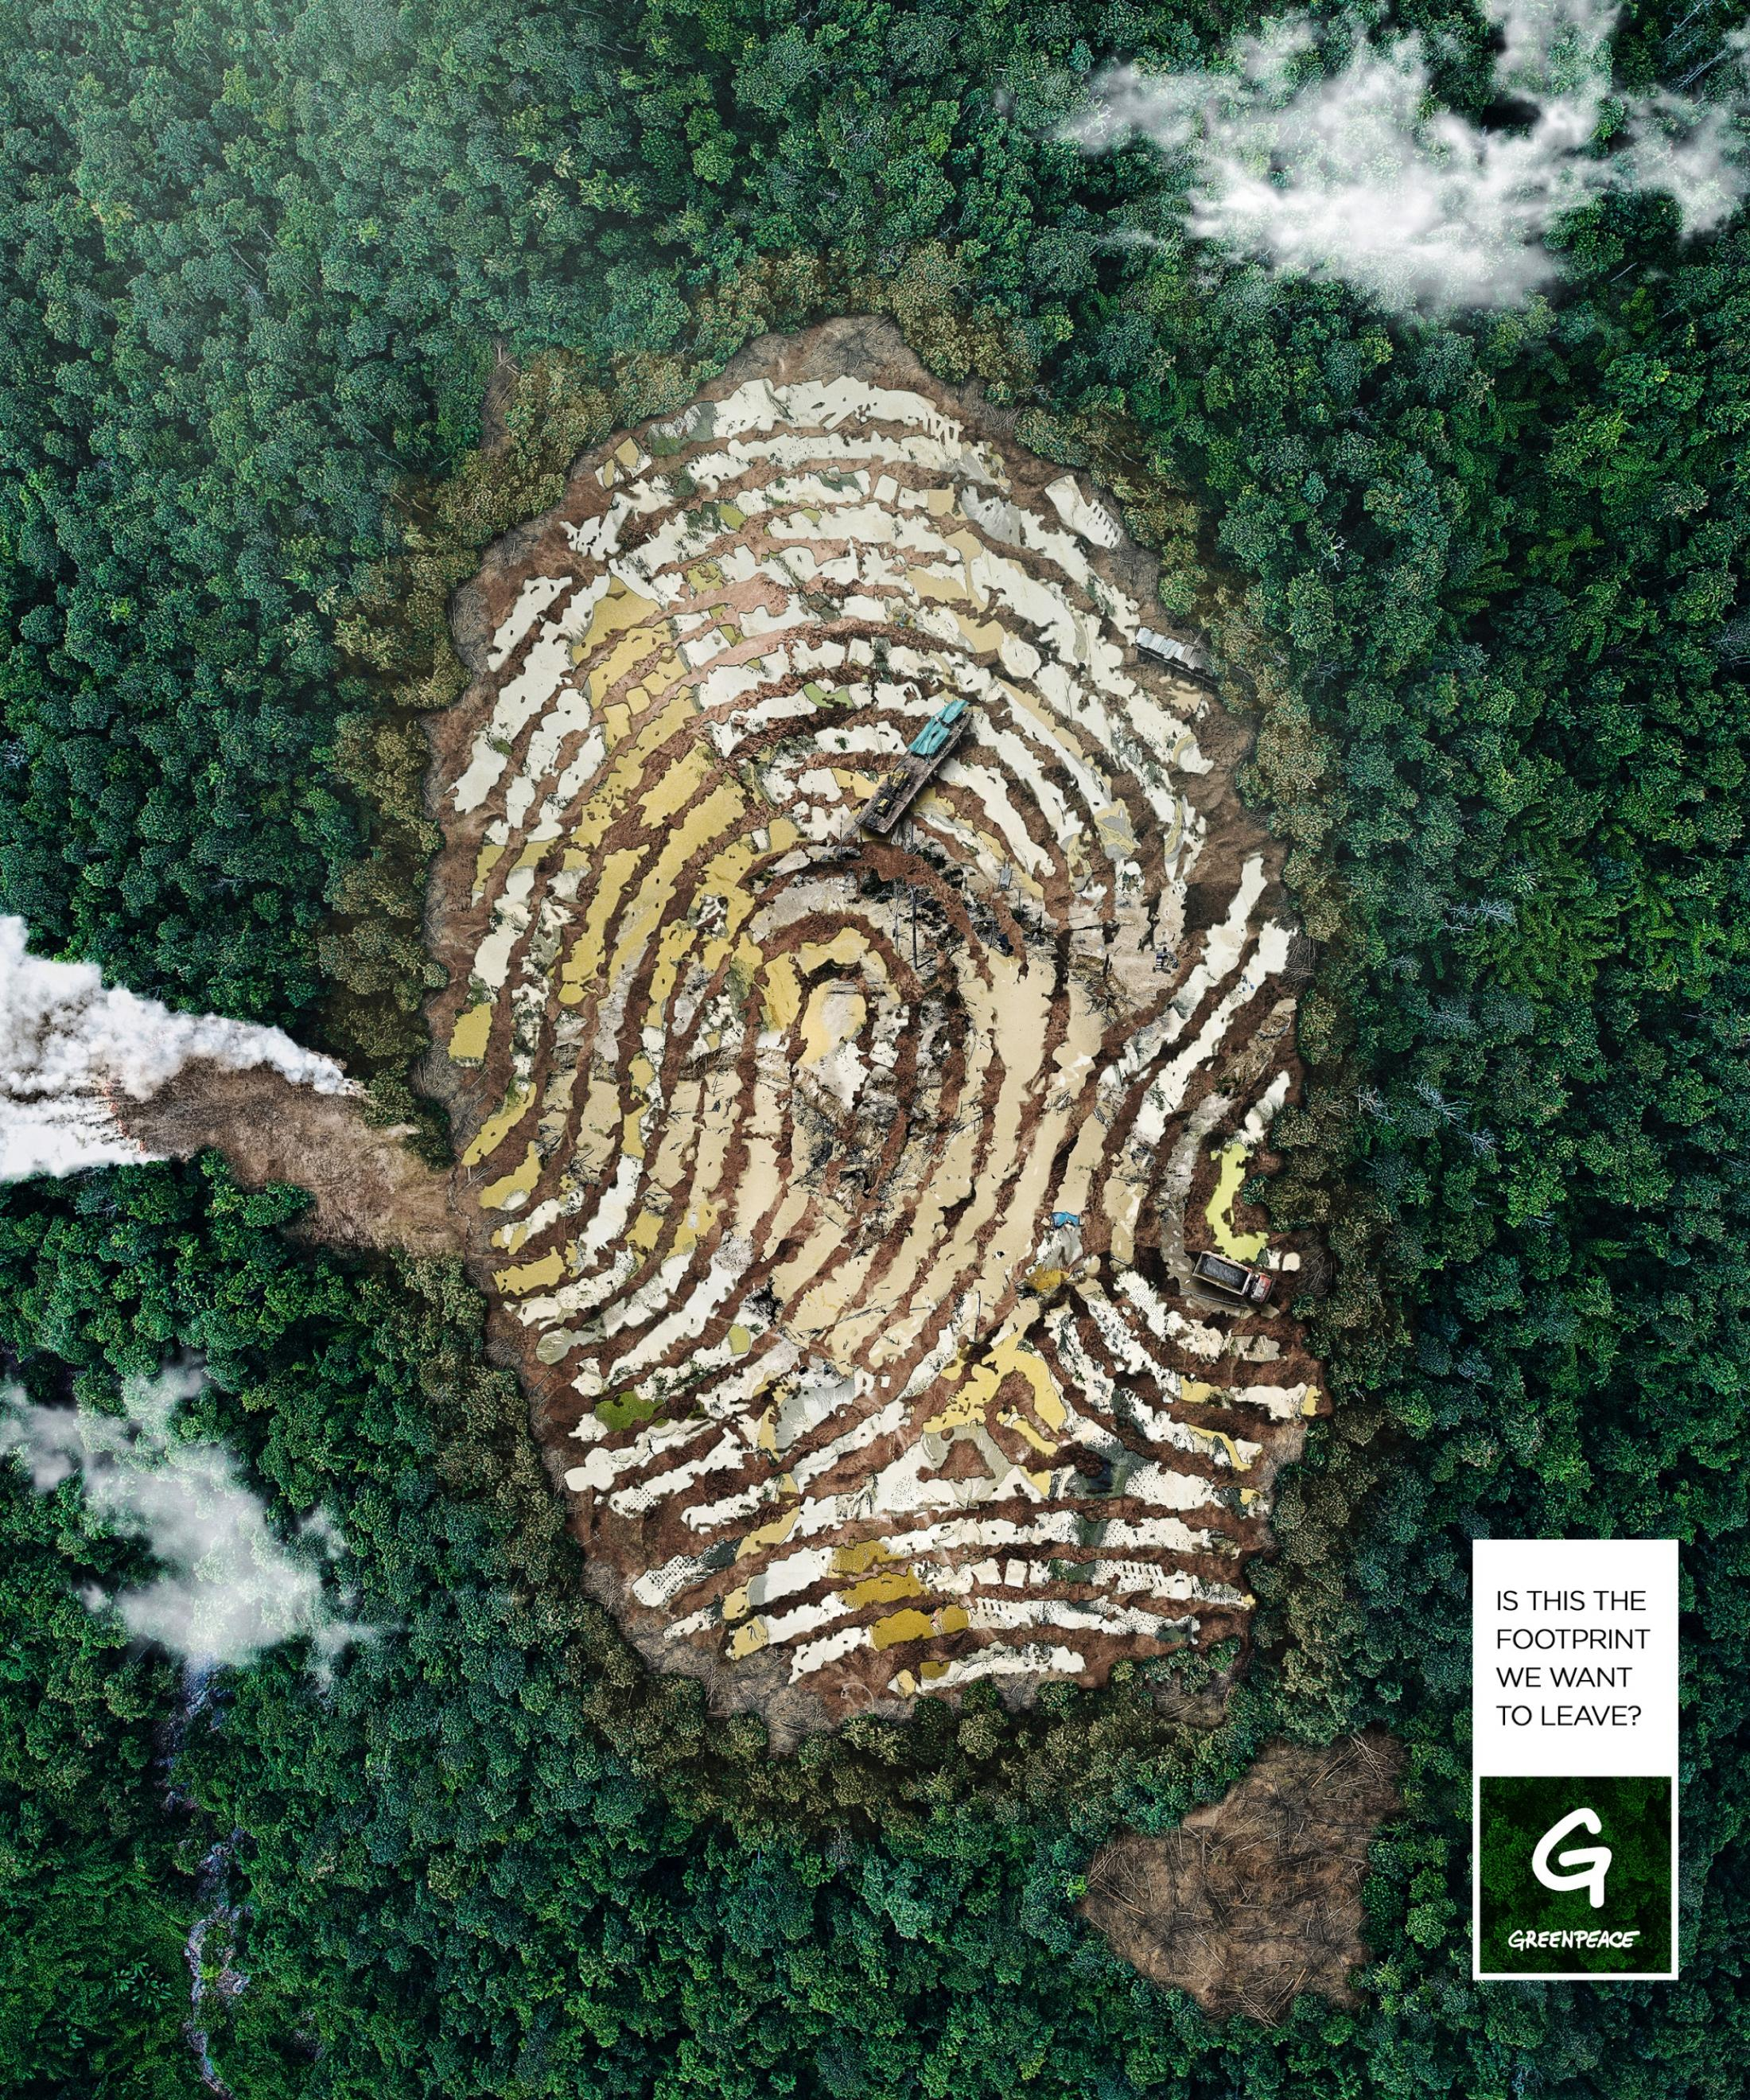 Greenpeace Print Ad - The Pollution Footprint, 2